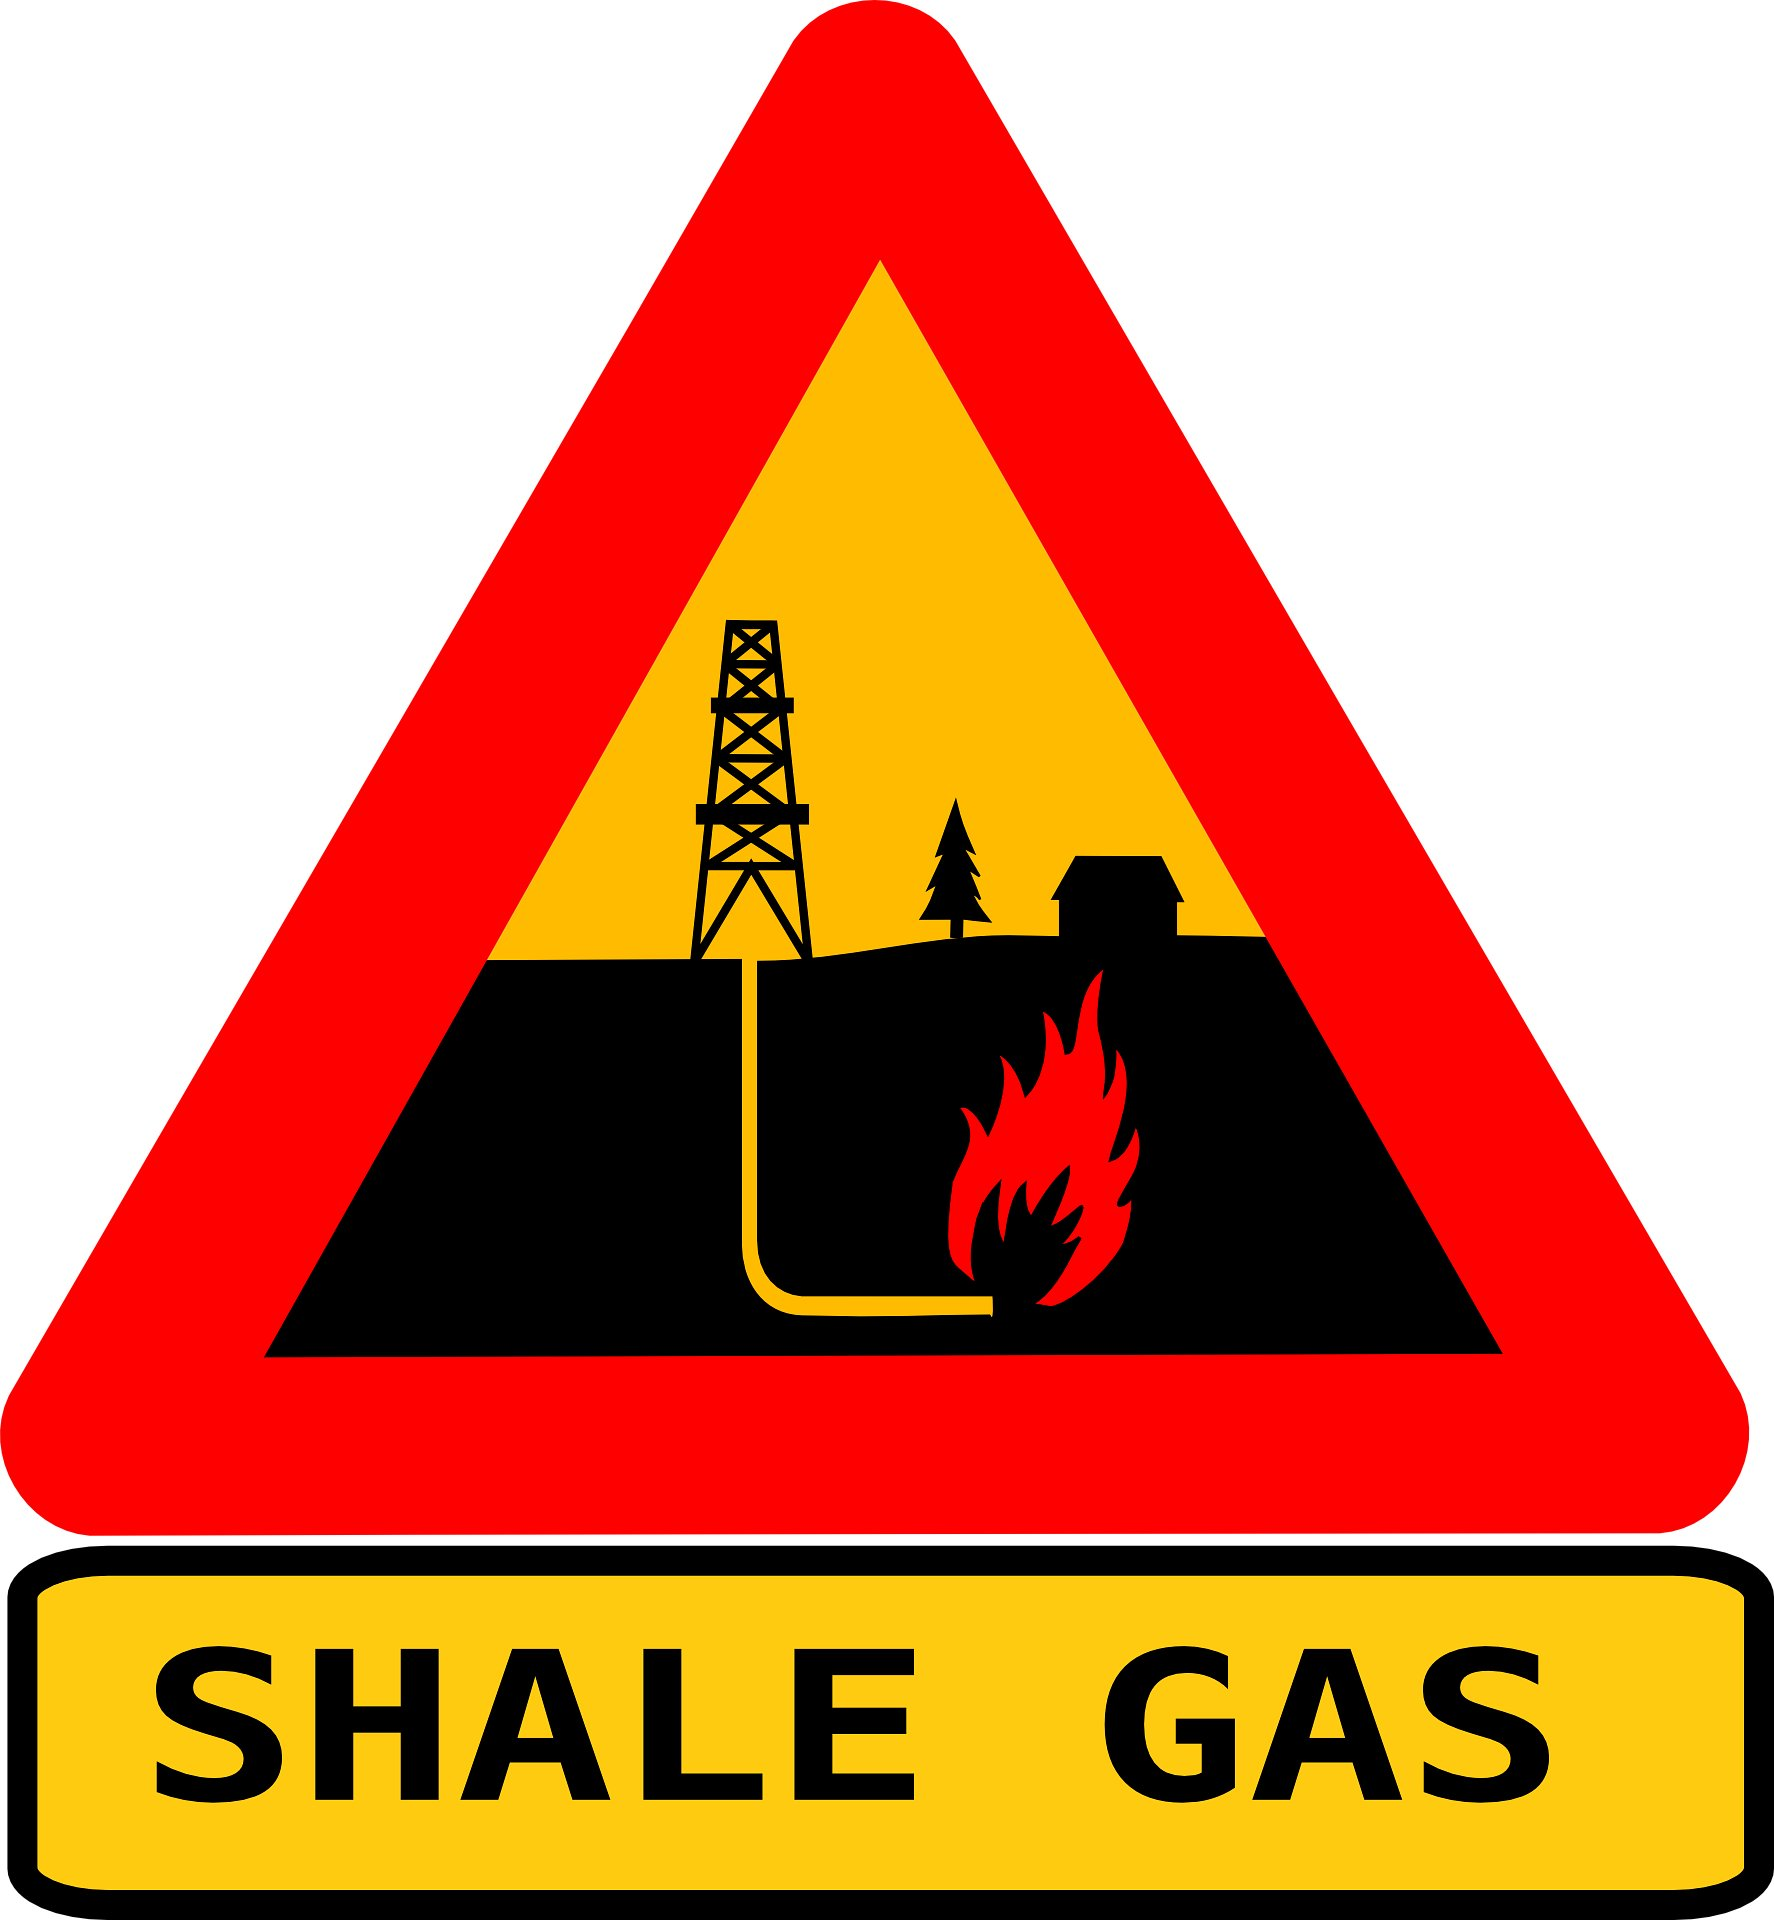 shale gas is one of the least sustainable ways to produce